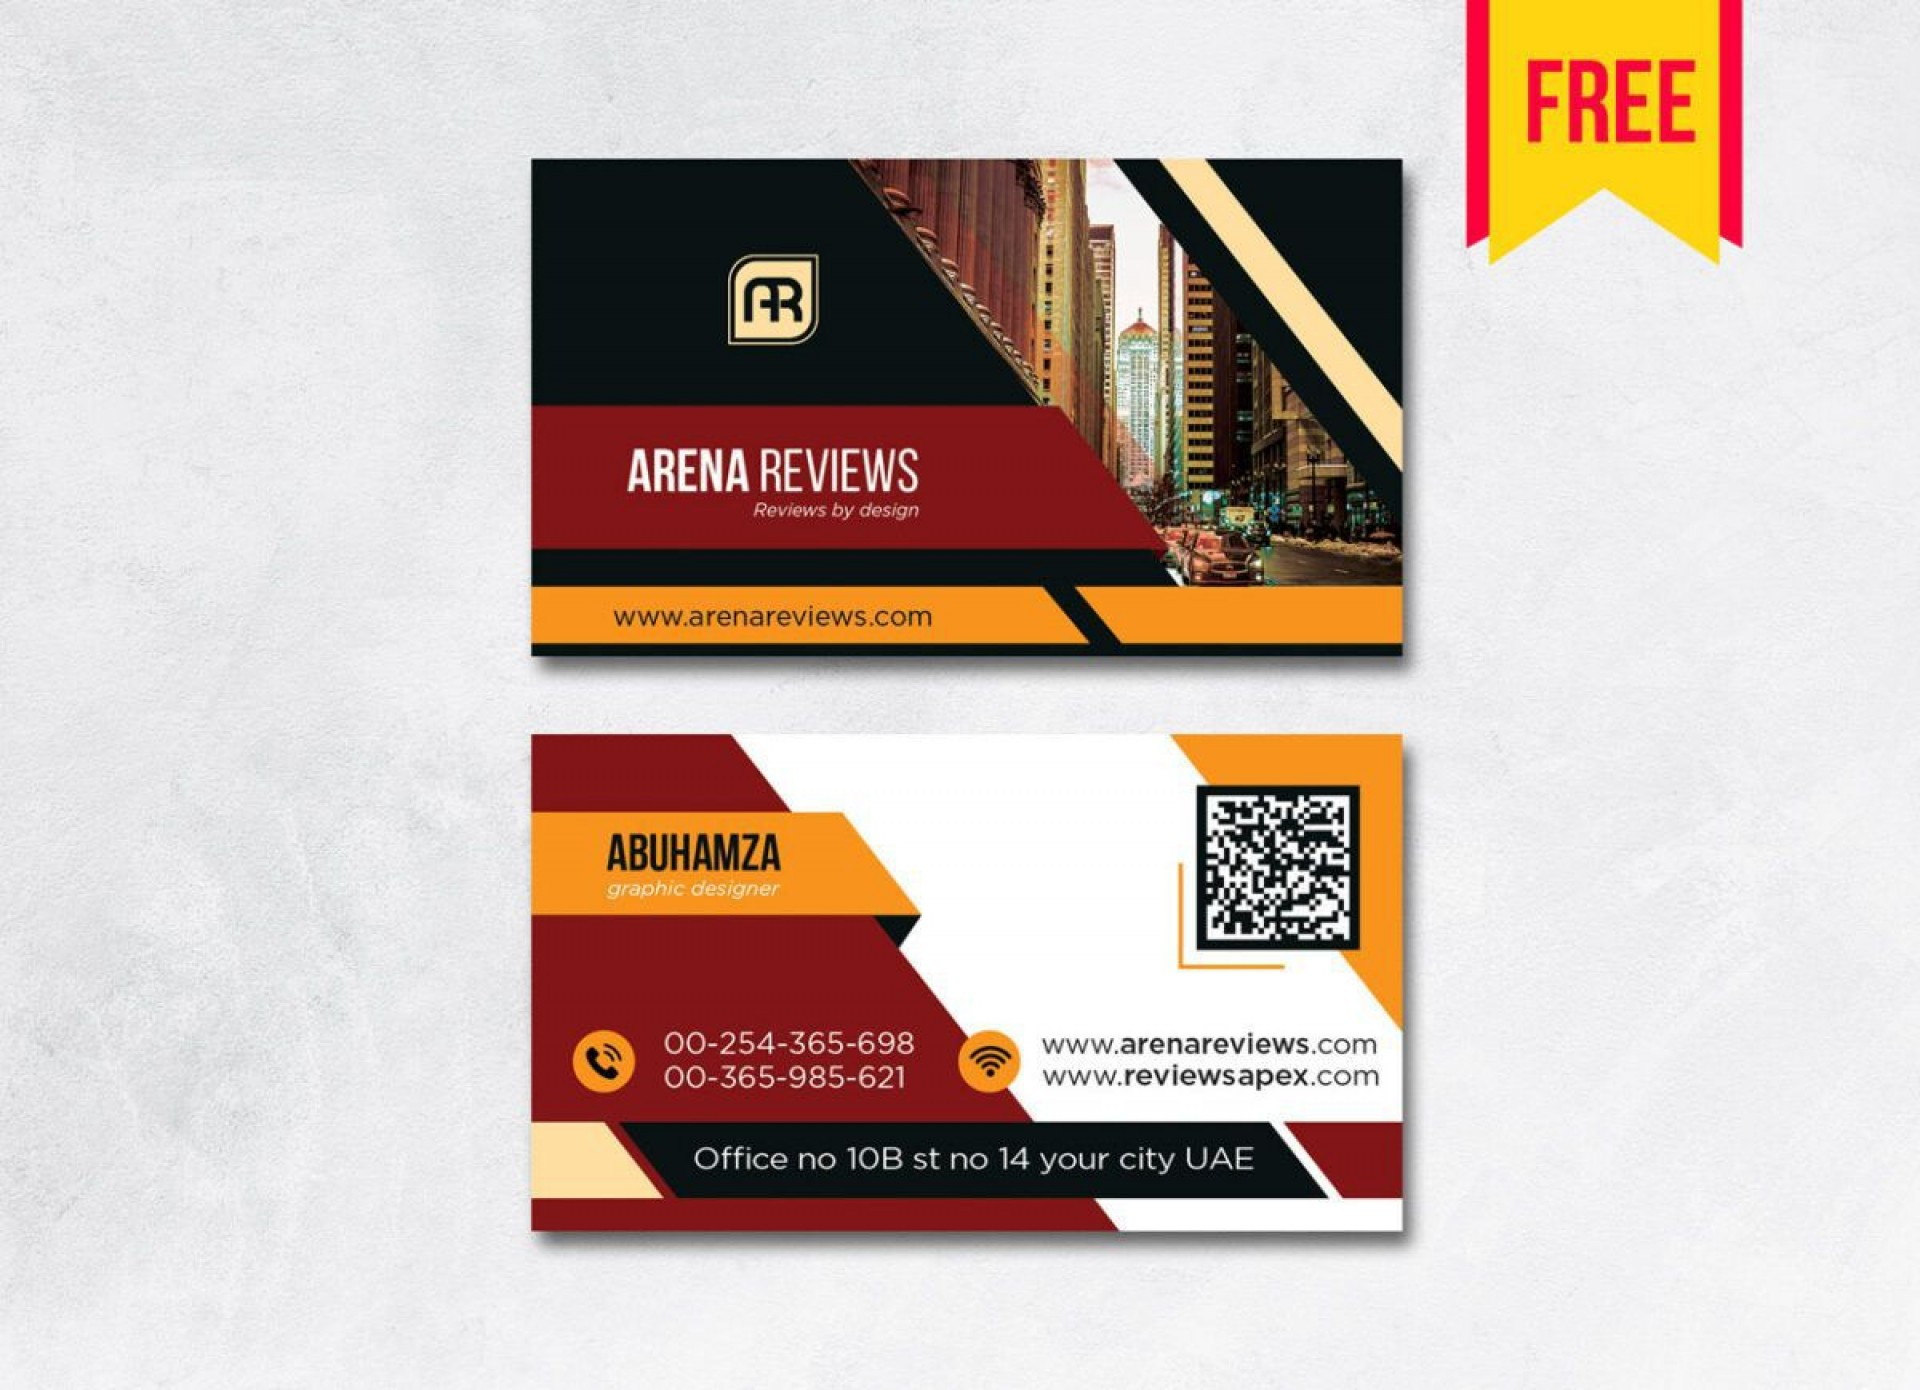 008 Best Blank Busines Card Template Psd Free Download High Definition  Photoshop1920